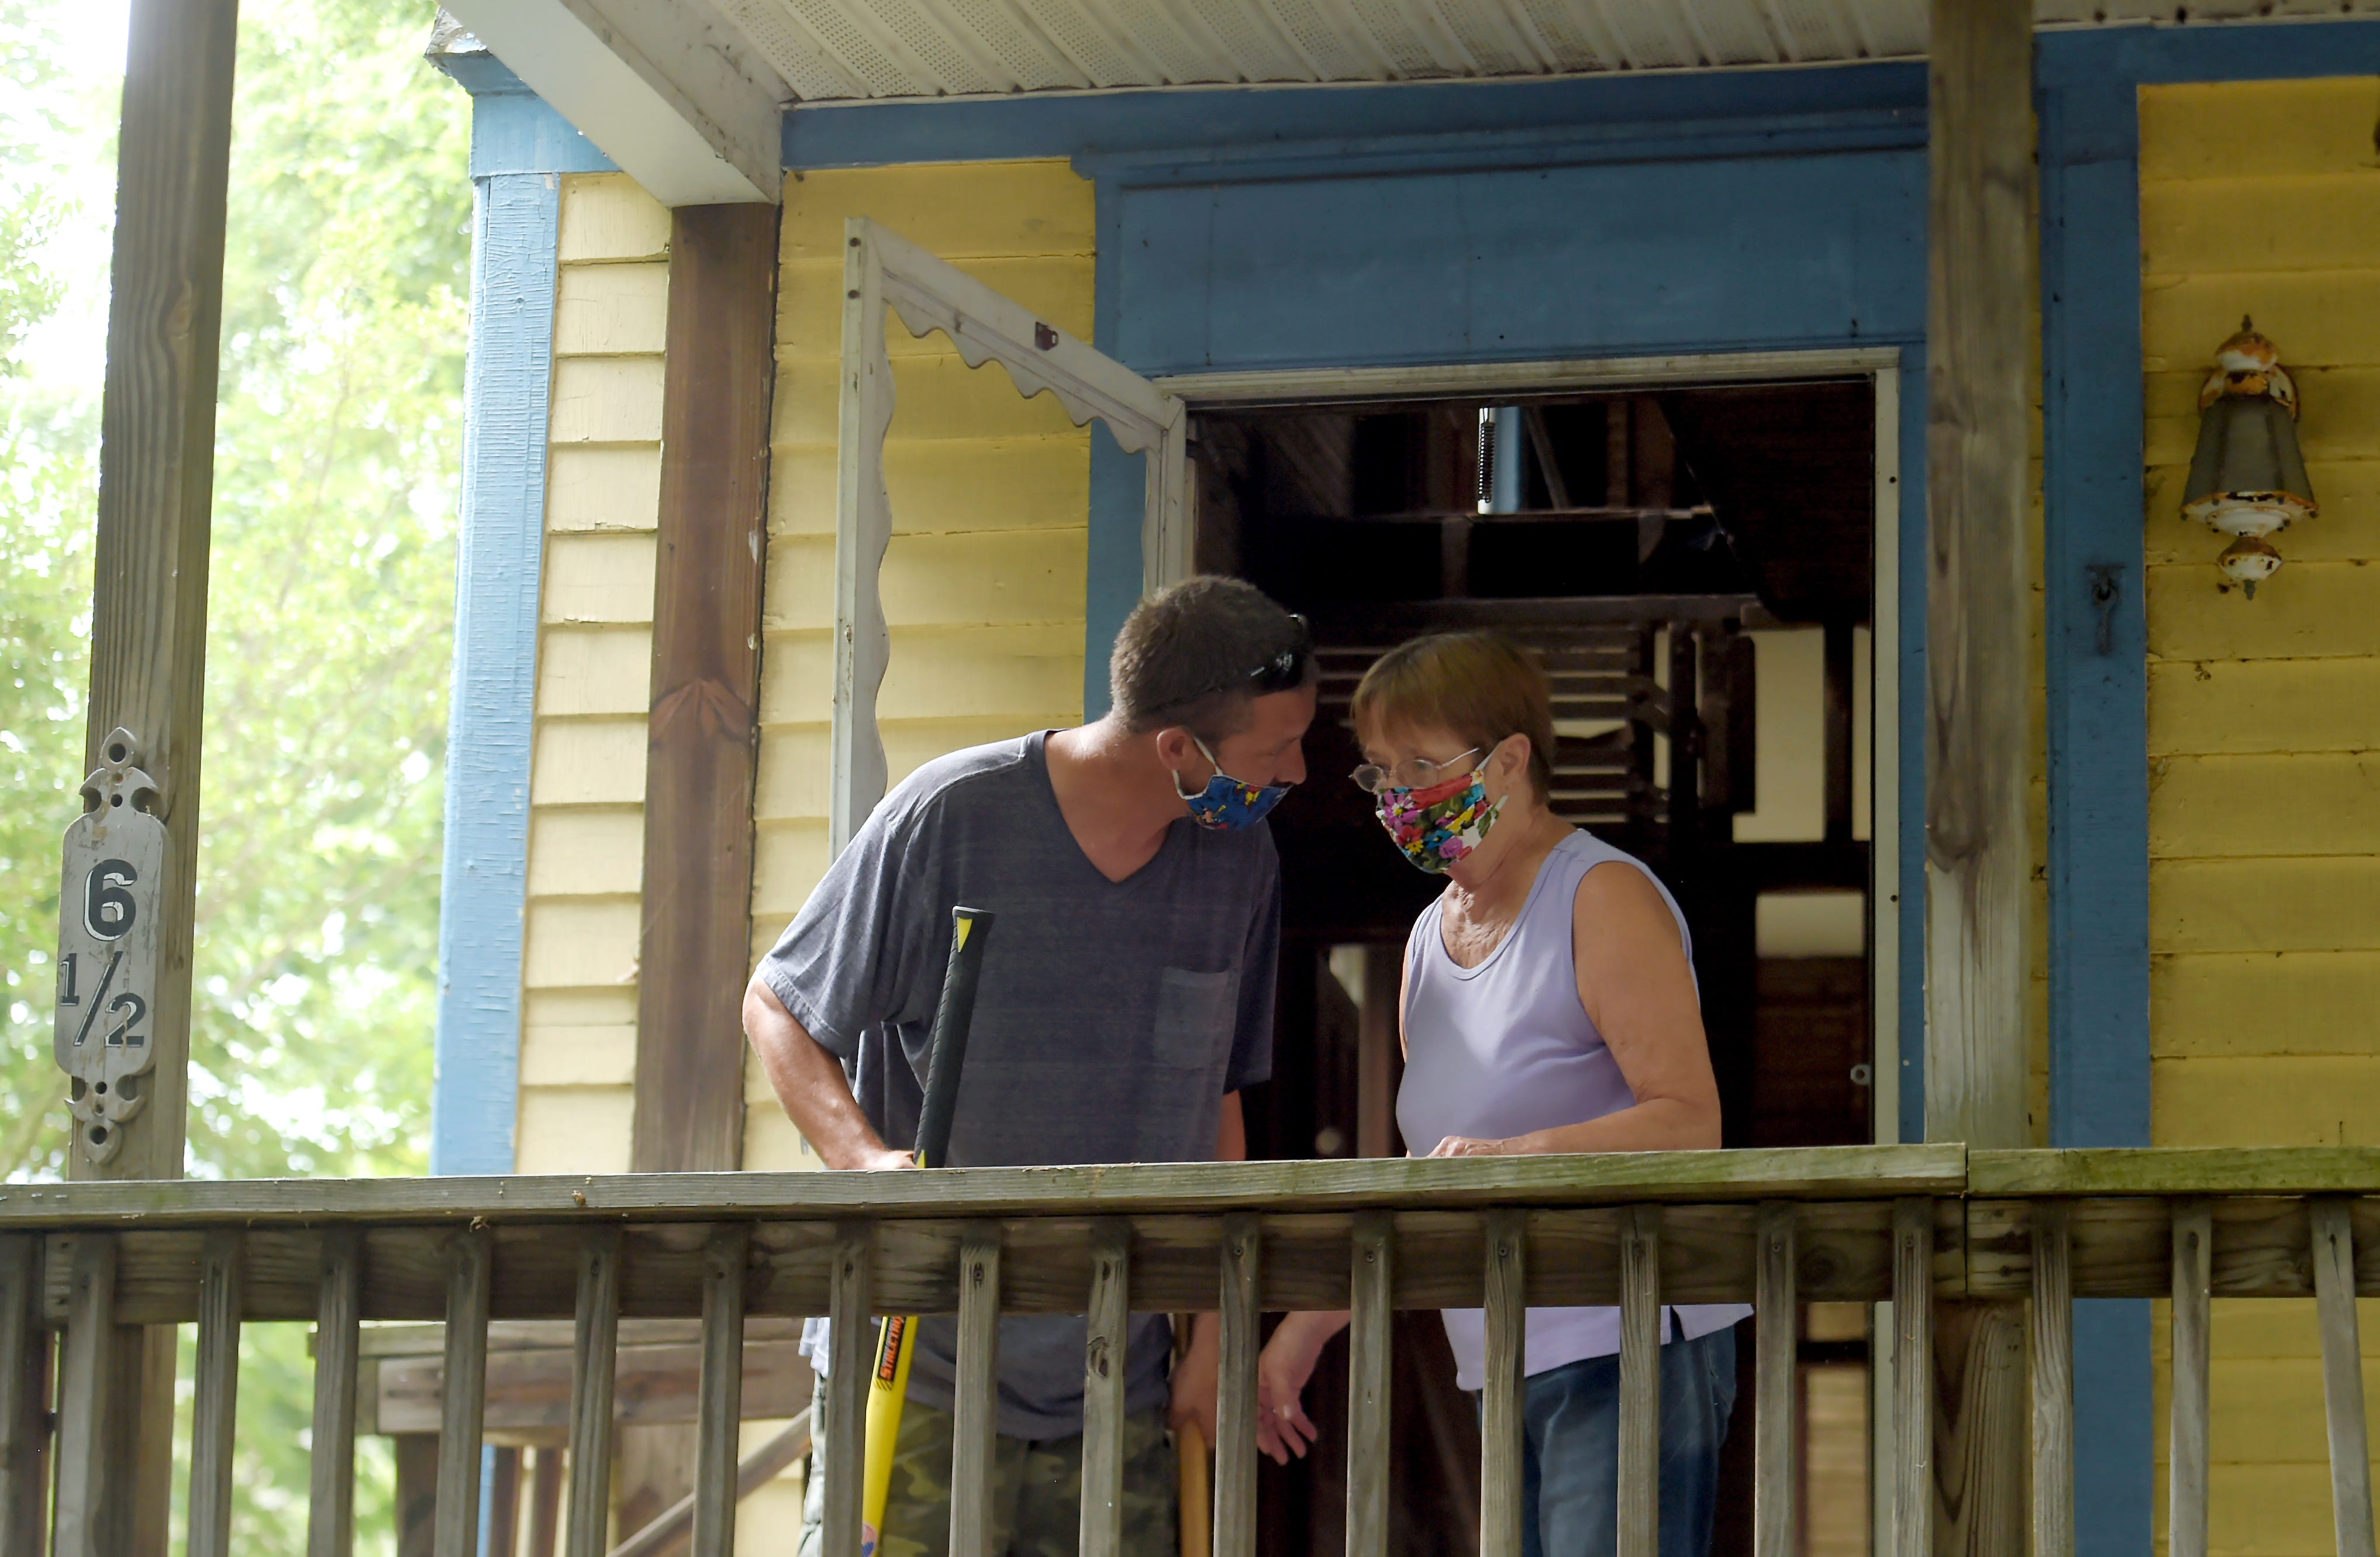 Dave and Jean Lindsey, brother and mother of Cheri Lindsey, who was murdered in 1984, after knocking down the door of the Sturges St., Binghamton, house where Cheri was murdered. Thursday, July 30, 2020.